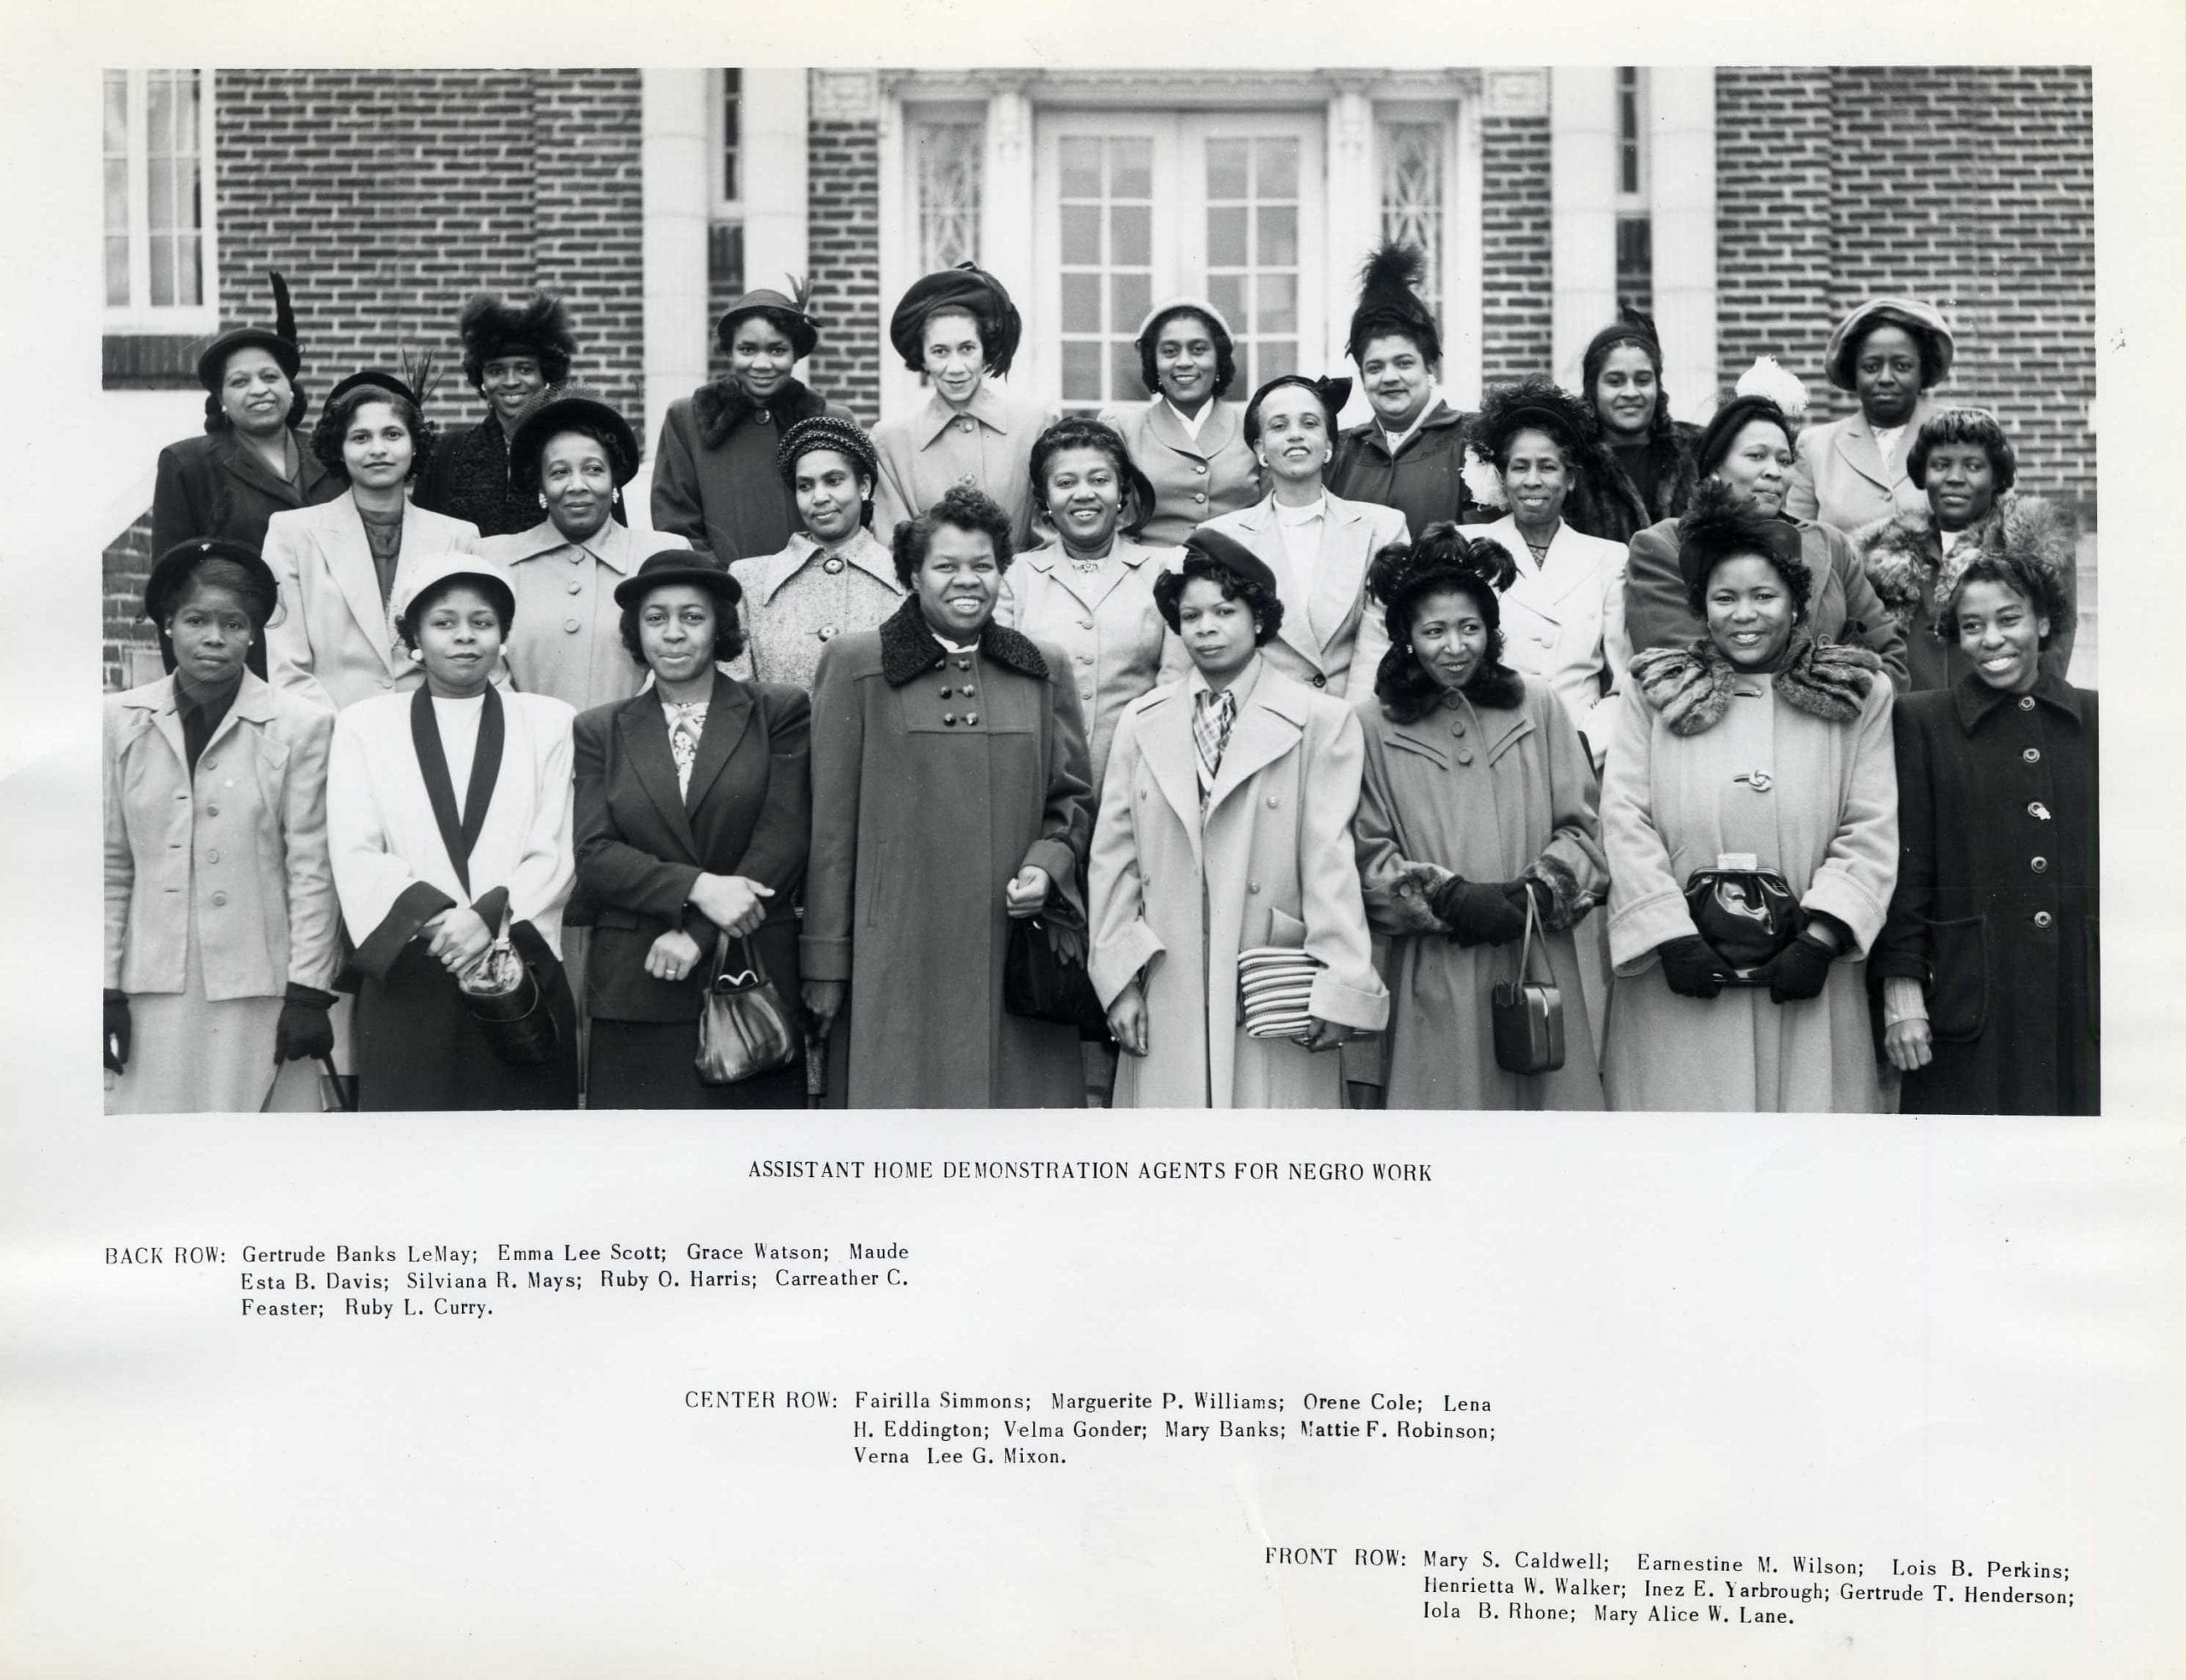 photograph: Assistant Home Demonstration Agents for Negro Work